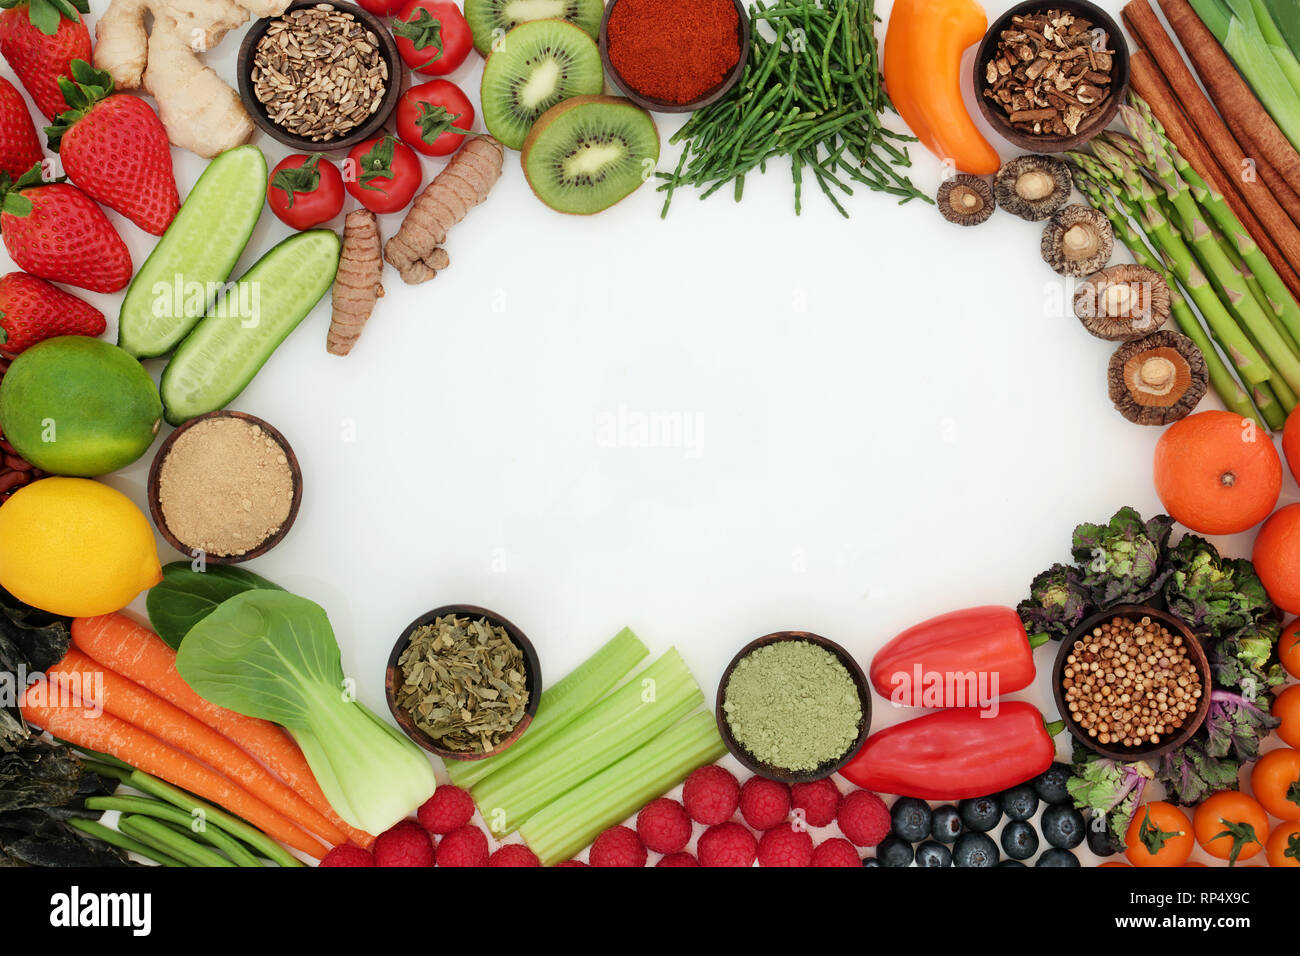 Liver detox health food background border  with fresh fruit, vegetables, herbs and spices also used in herbal medicine with supplement powders. - Stock Image